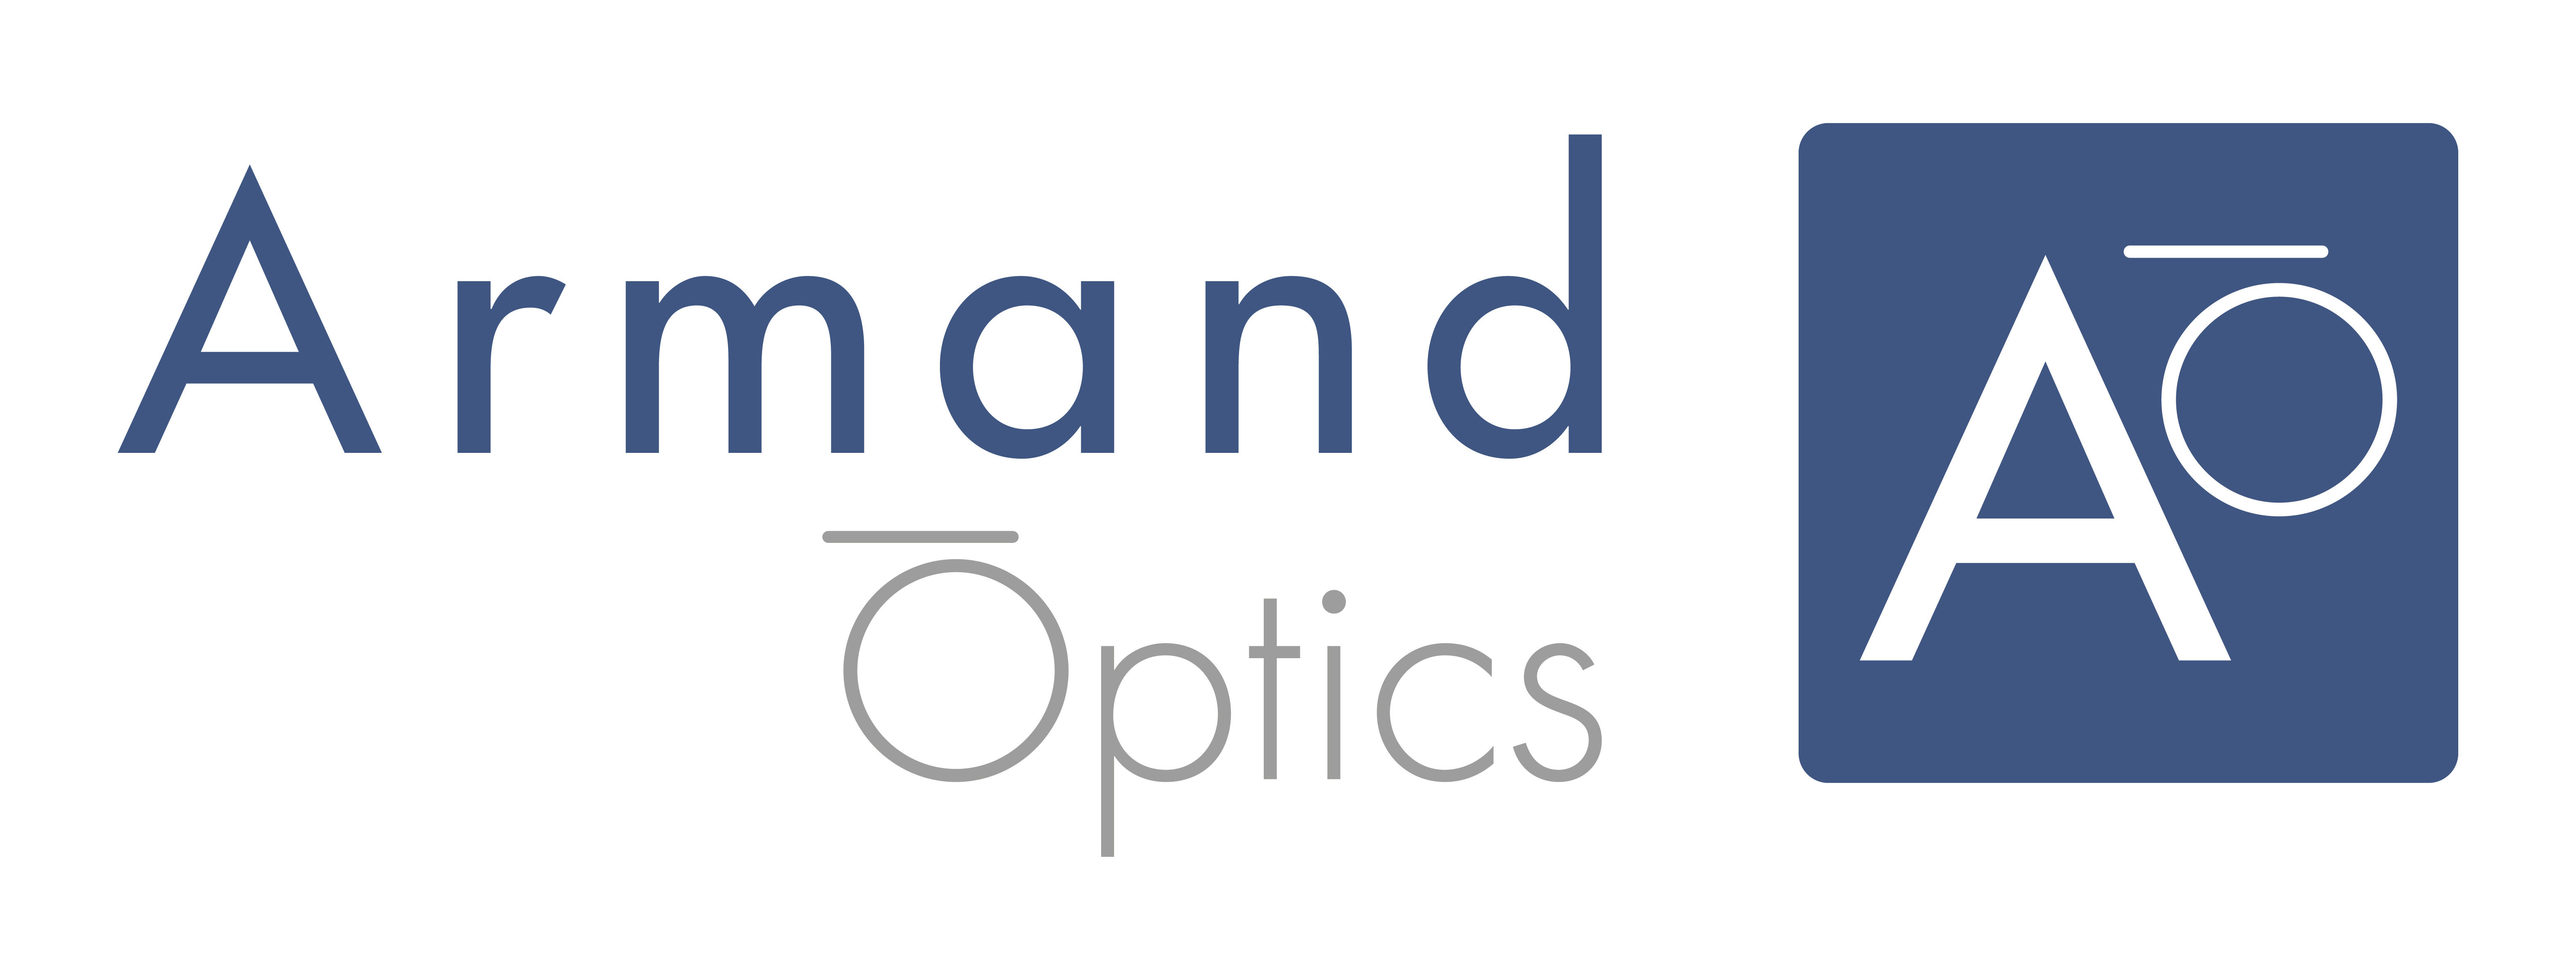 Armand Optics